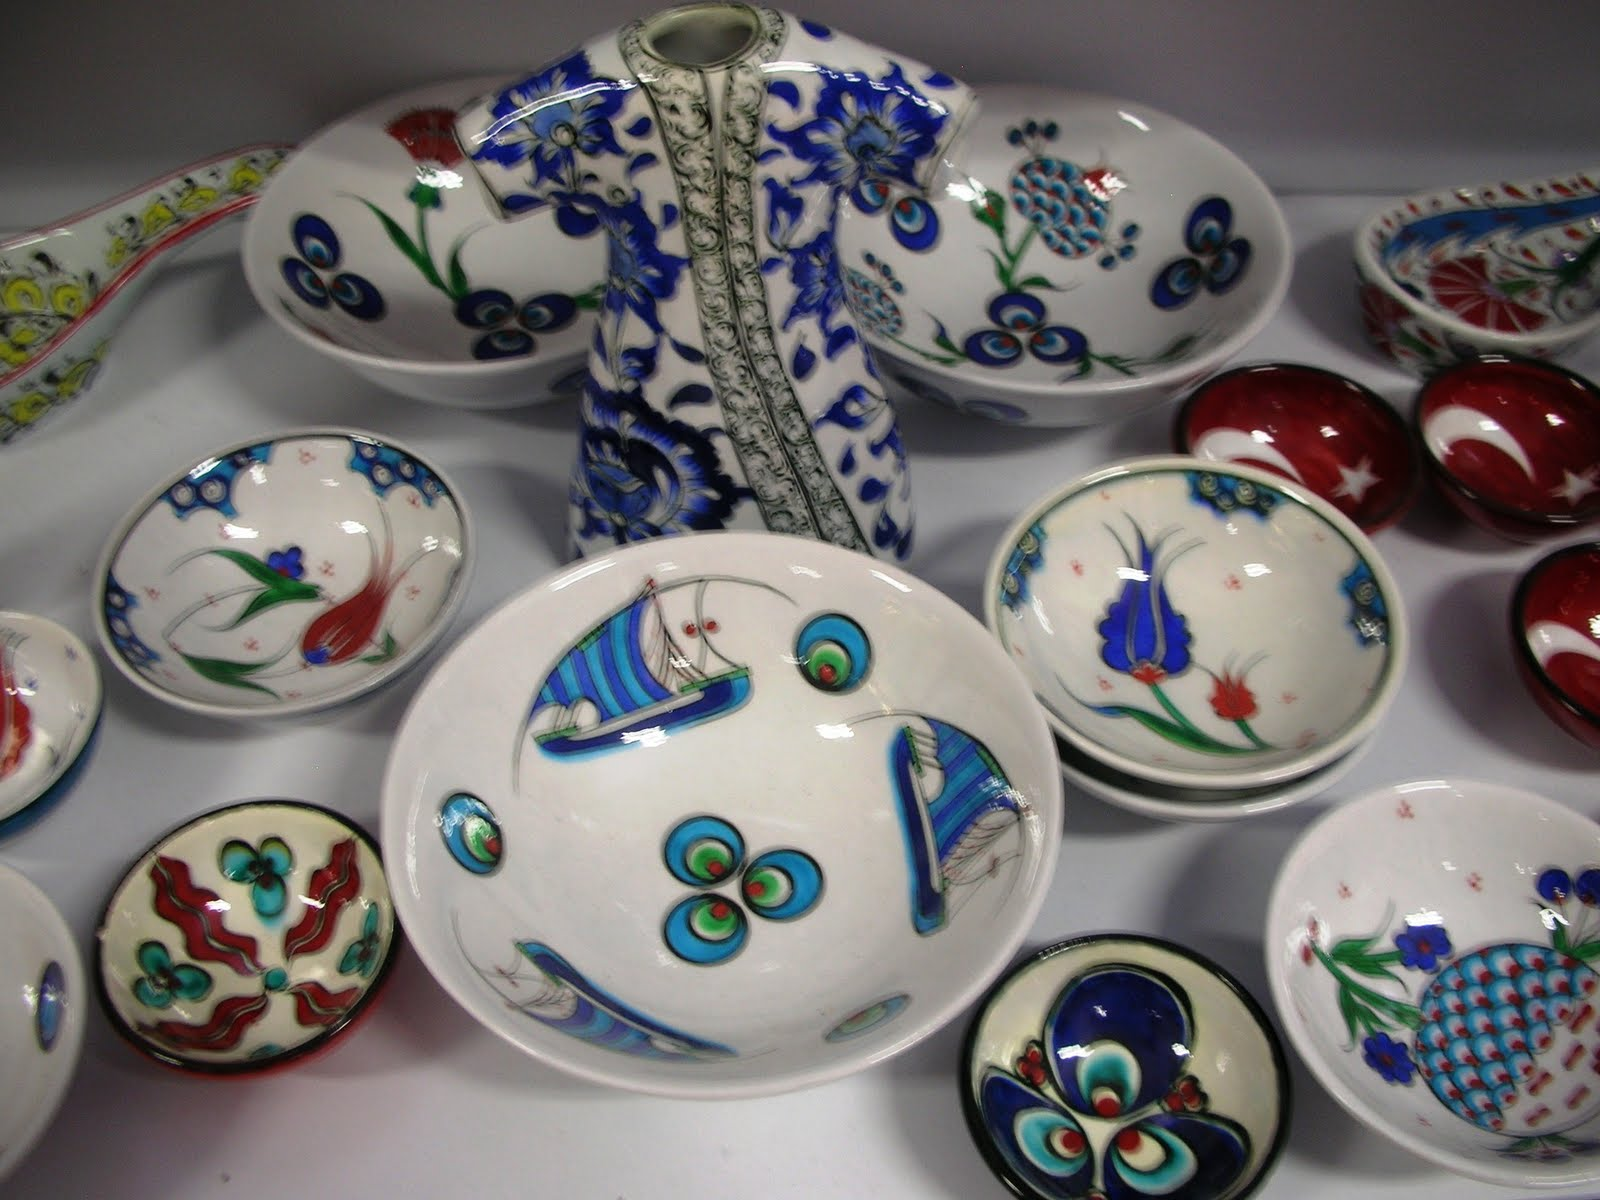 Last but not least some wonderful ex&les of hand painted Turkish pottery and some good reading to share by our famous author Orhan Pamuk and Louis de ... : turkish tableware - pezcame.com